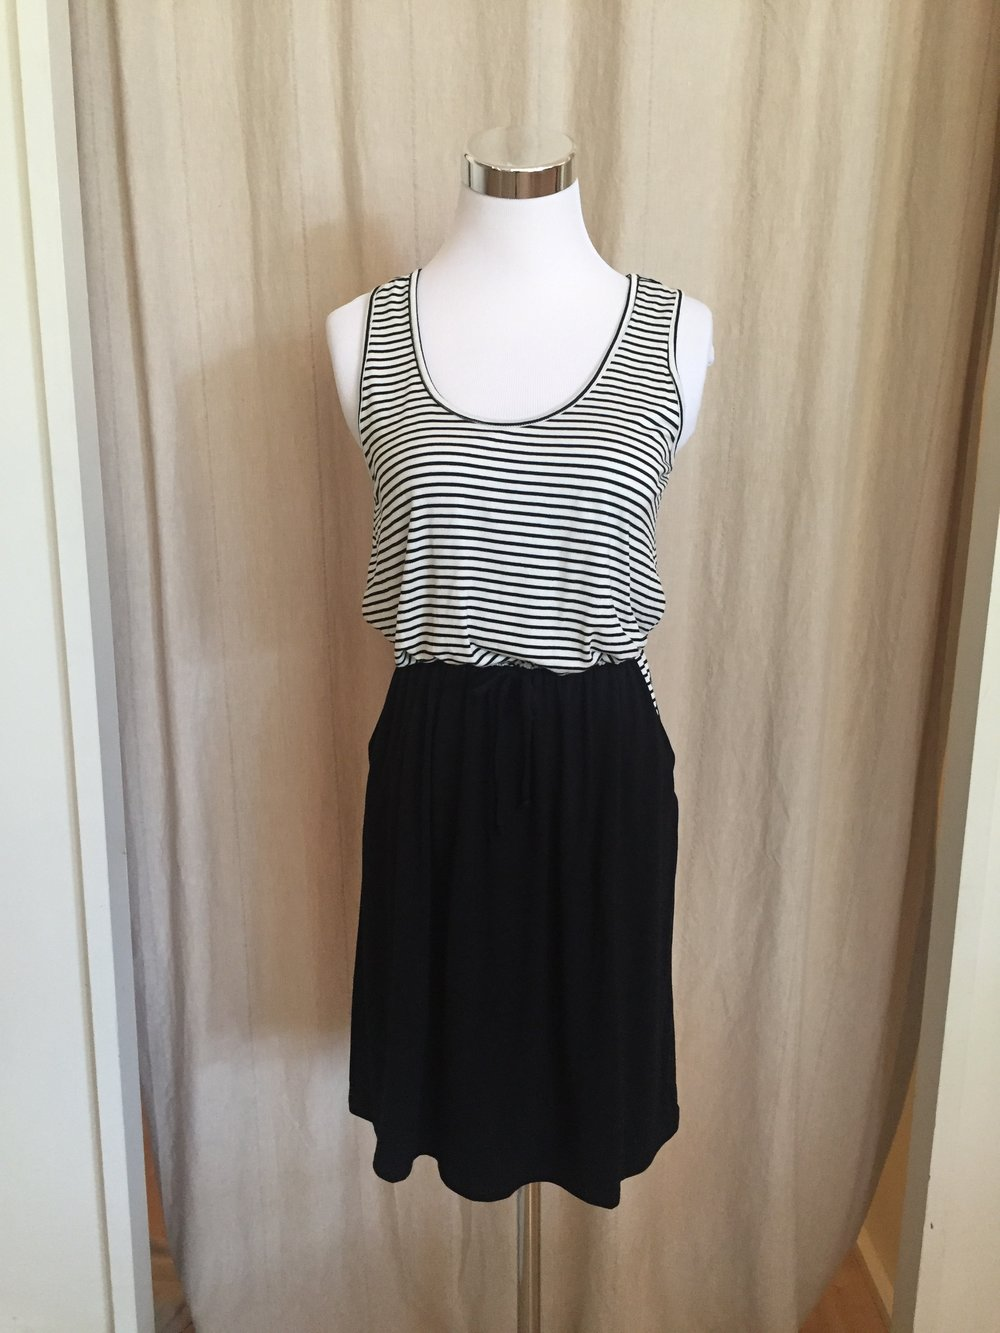 Sailing Stripes Dress, $38